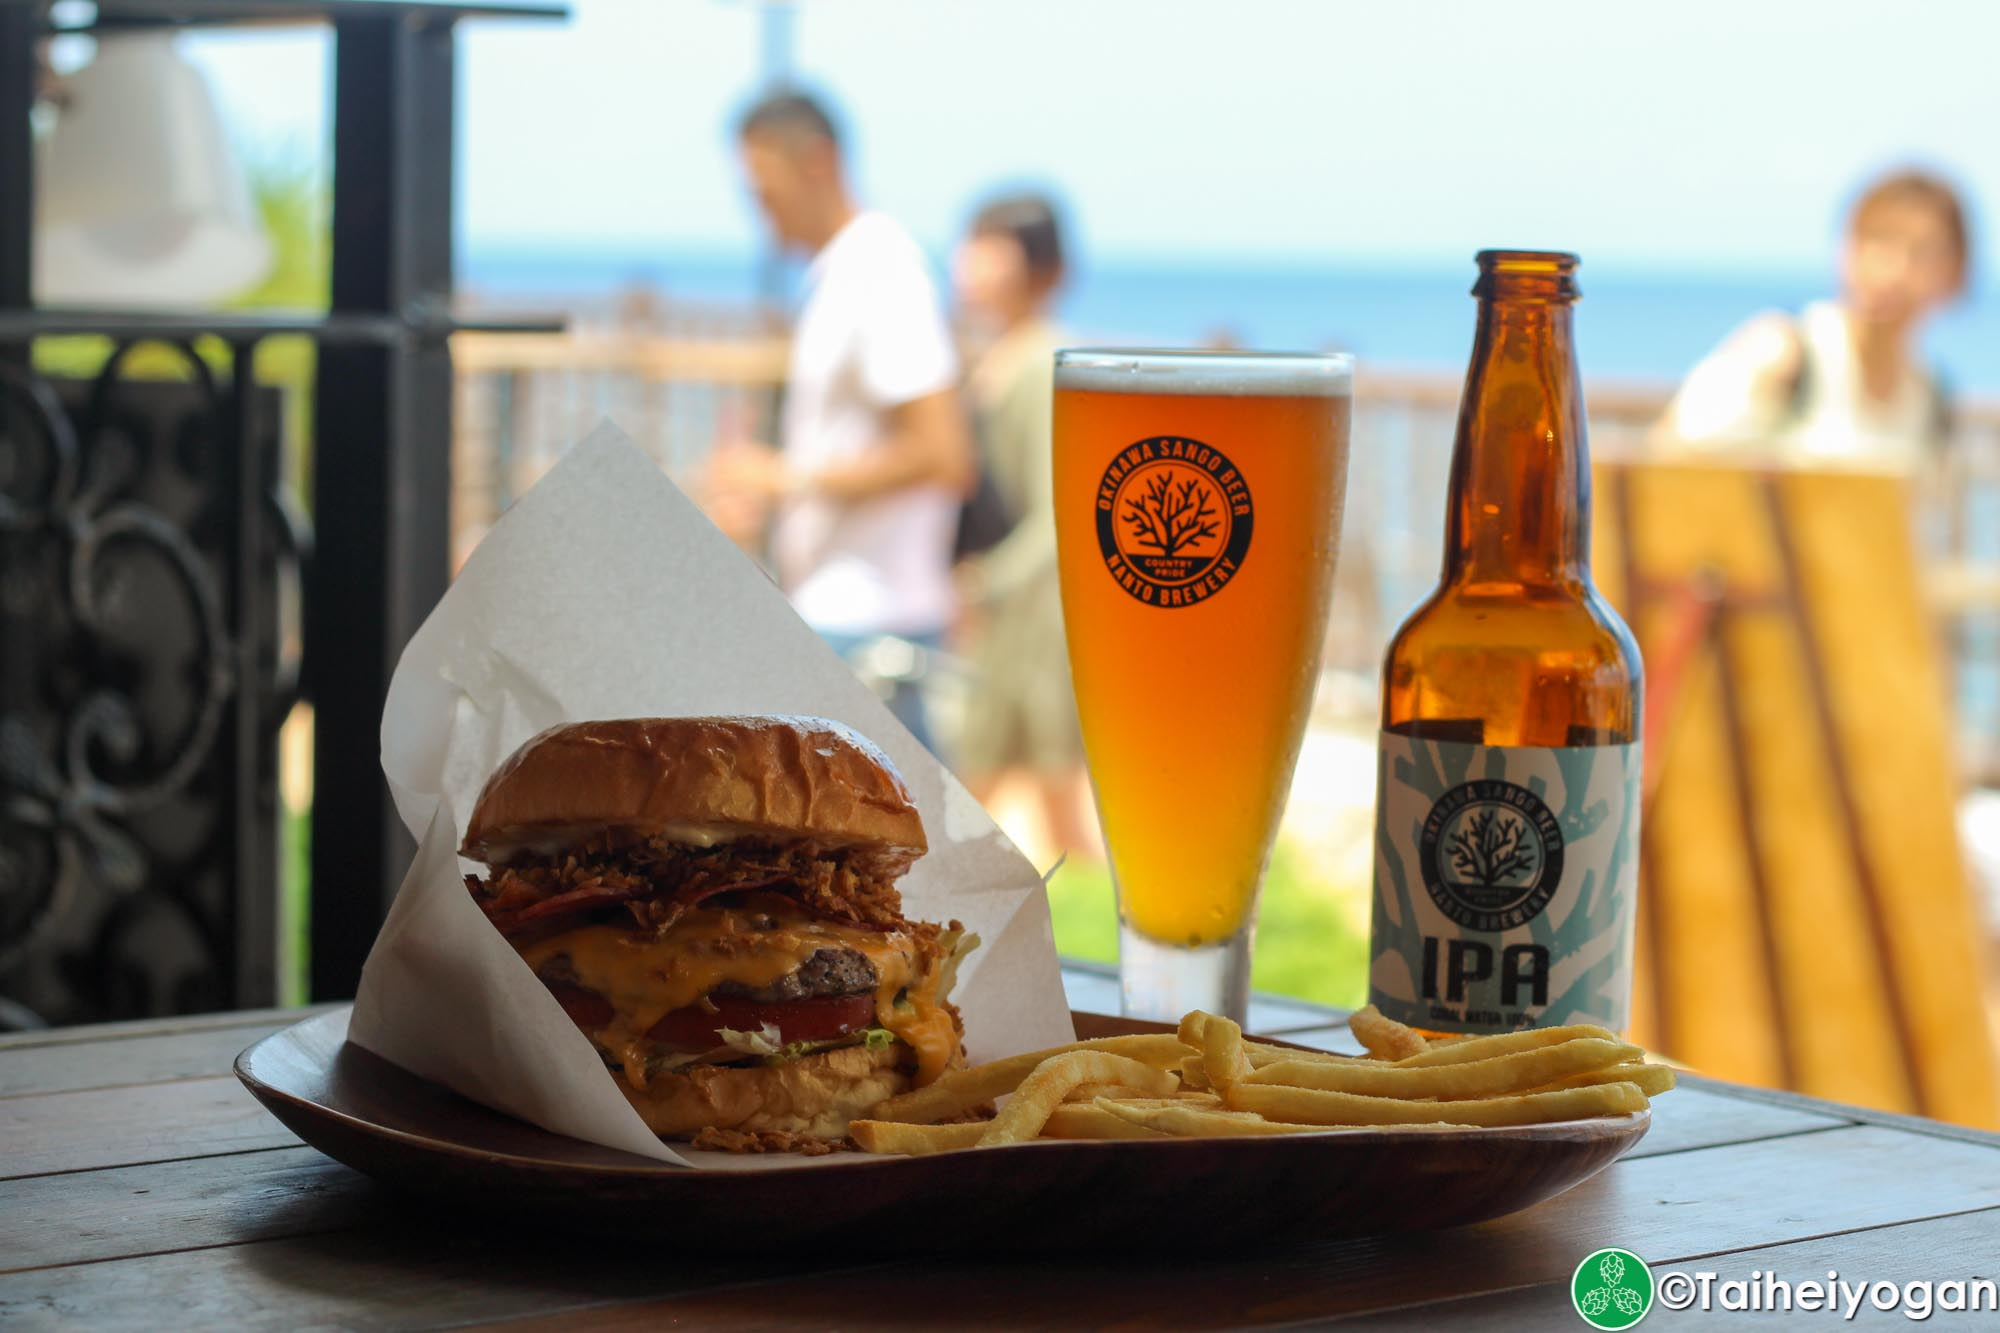 Chatan Burger Base Atabii's - Menu - Neo Bacon Cheeseburger & Okinawa Sango Beer